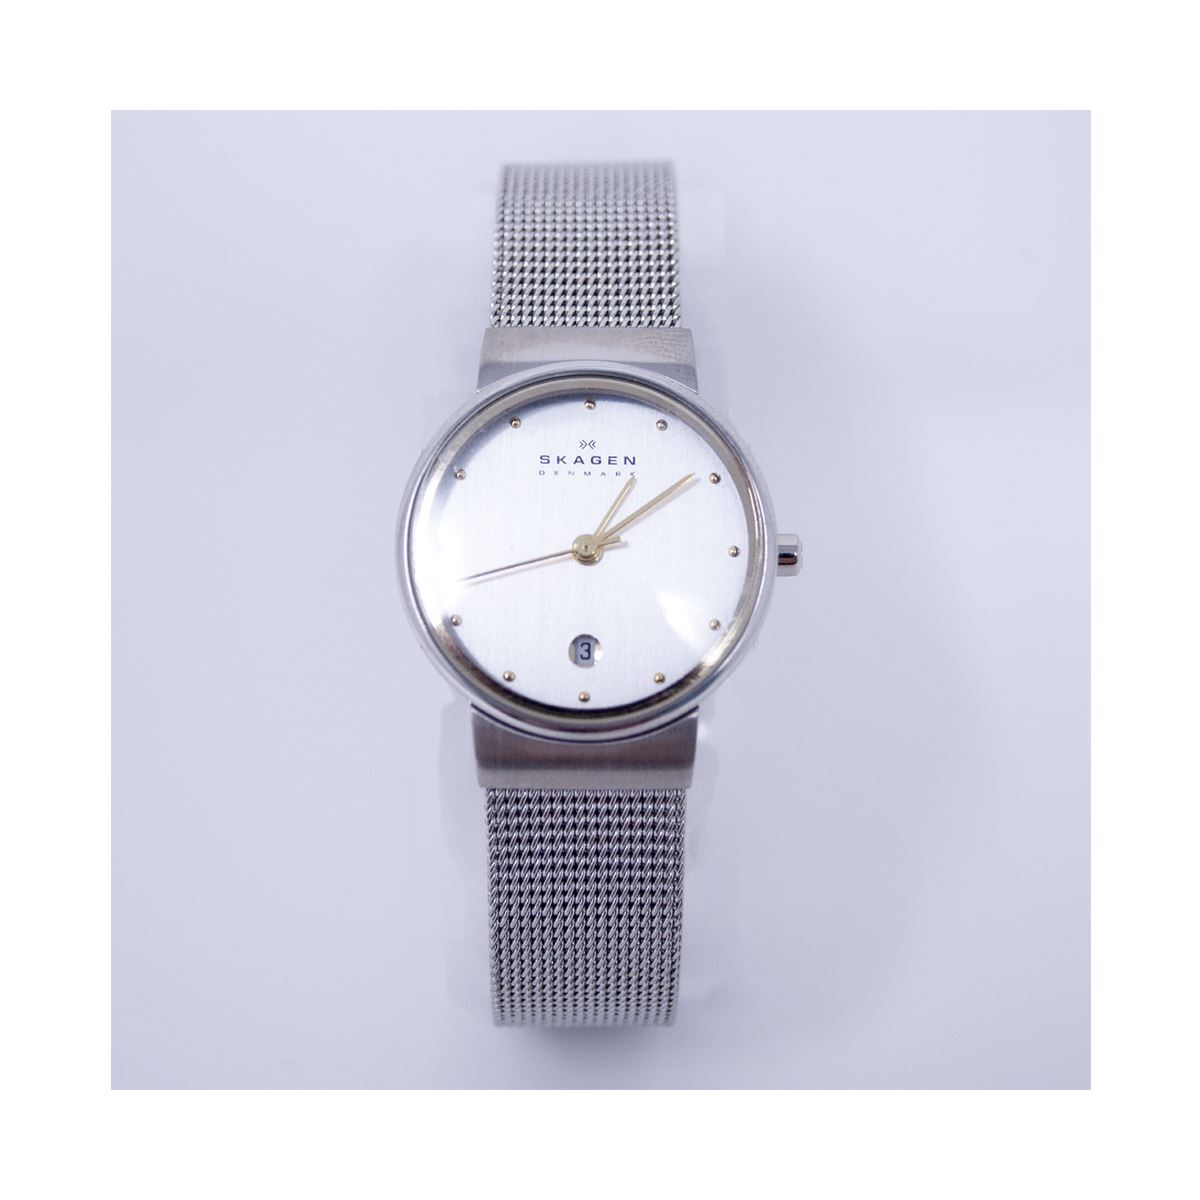 products watch stainless shades johnny watches elegant band steel mesh allegro metal luxury